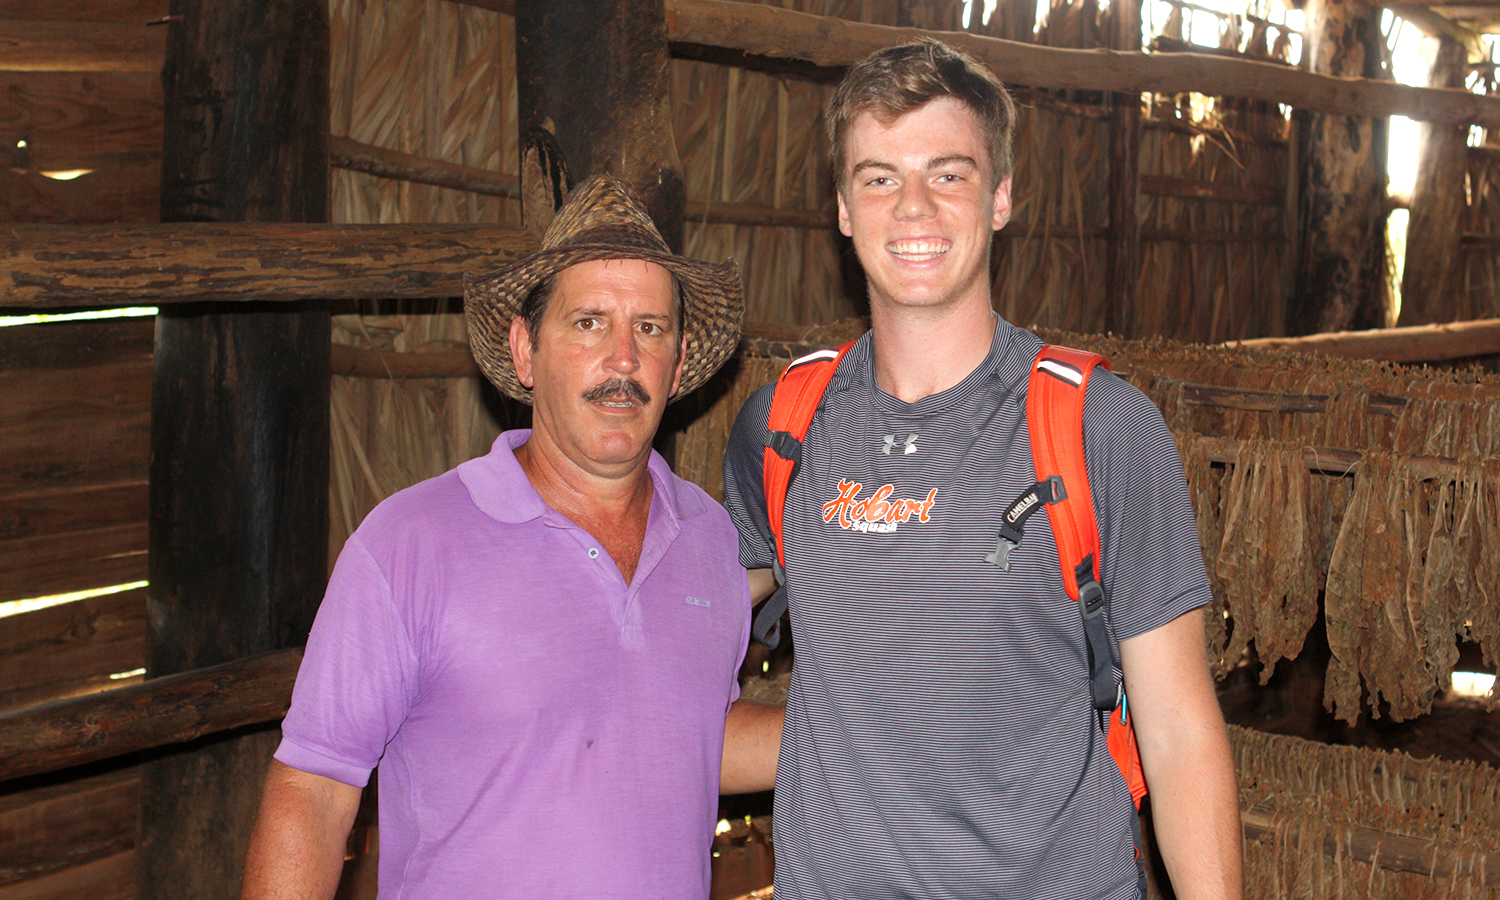 After learning how authentic Cuban Cigars are made, Jack Shannon '18 takes a picture with the owner of the tobacco plantation.